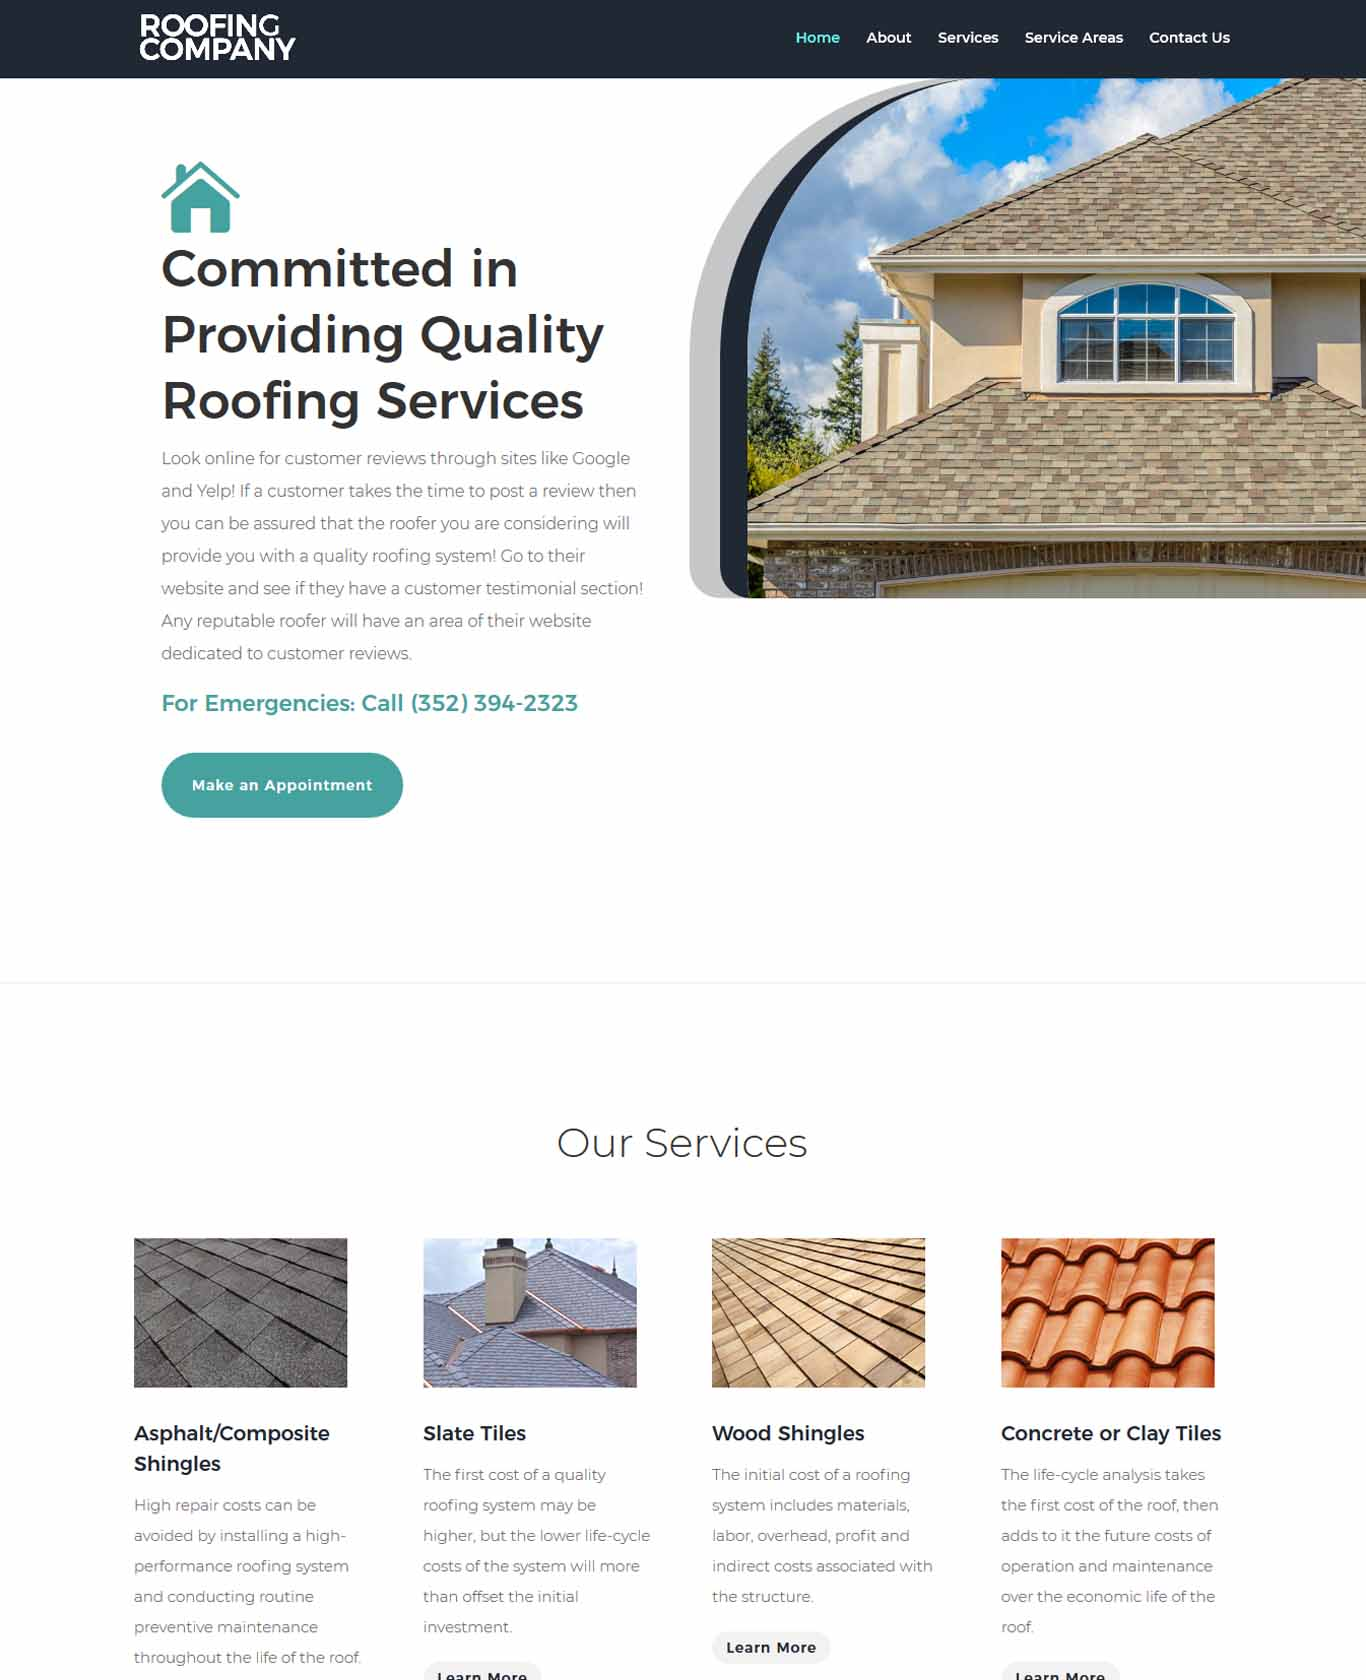 Roofer Website Sample Design 1